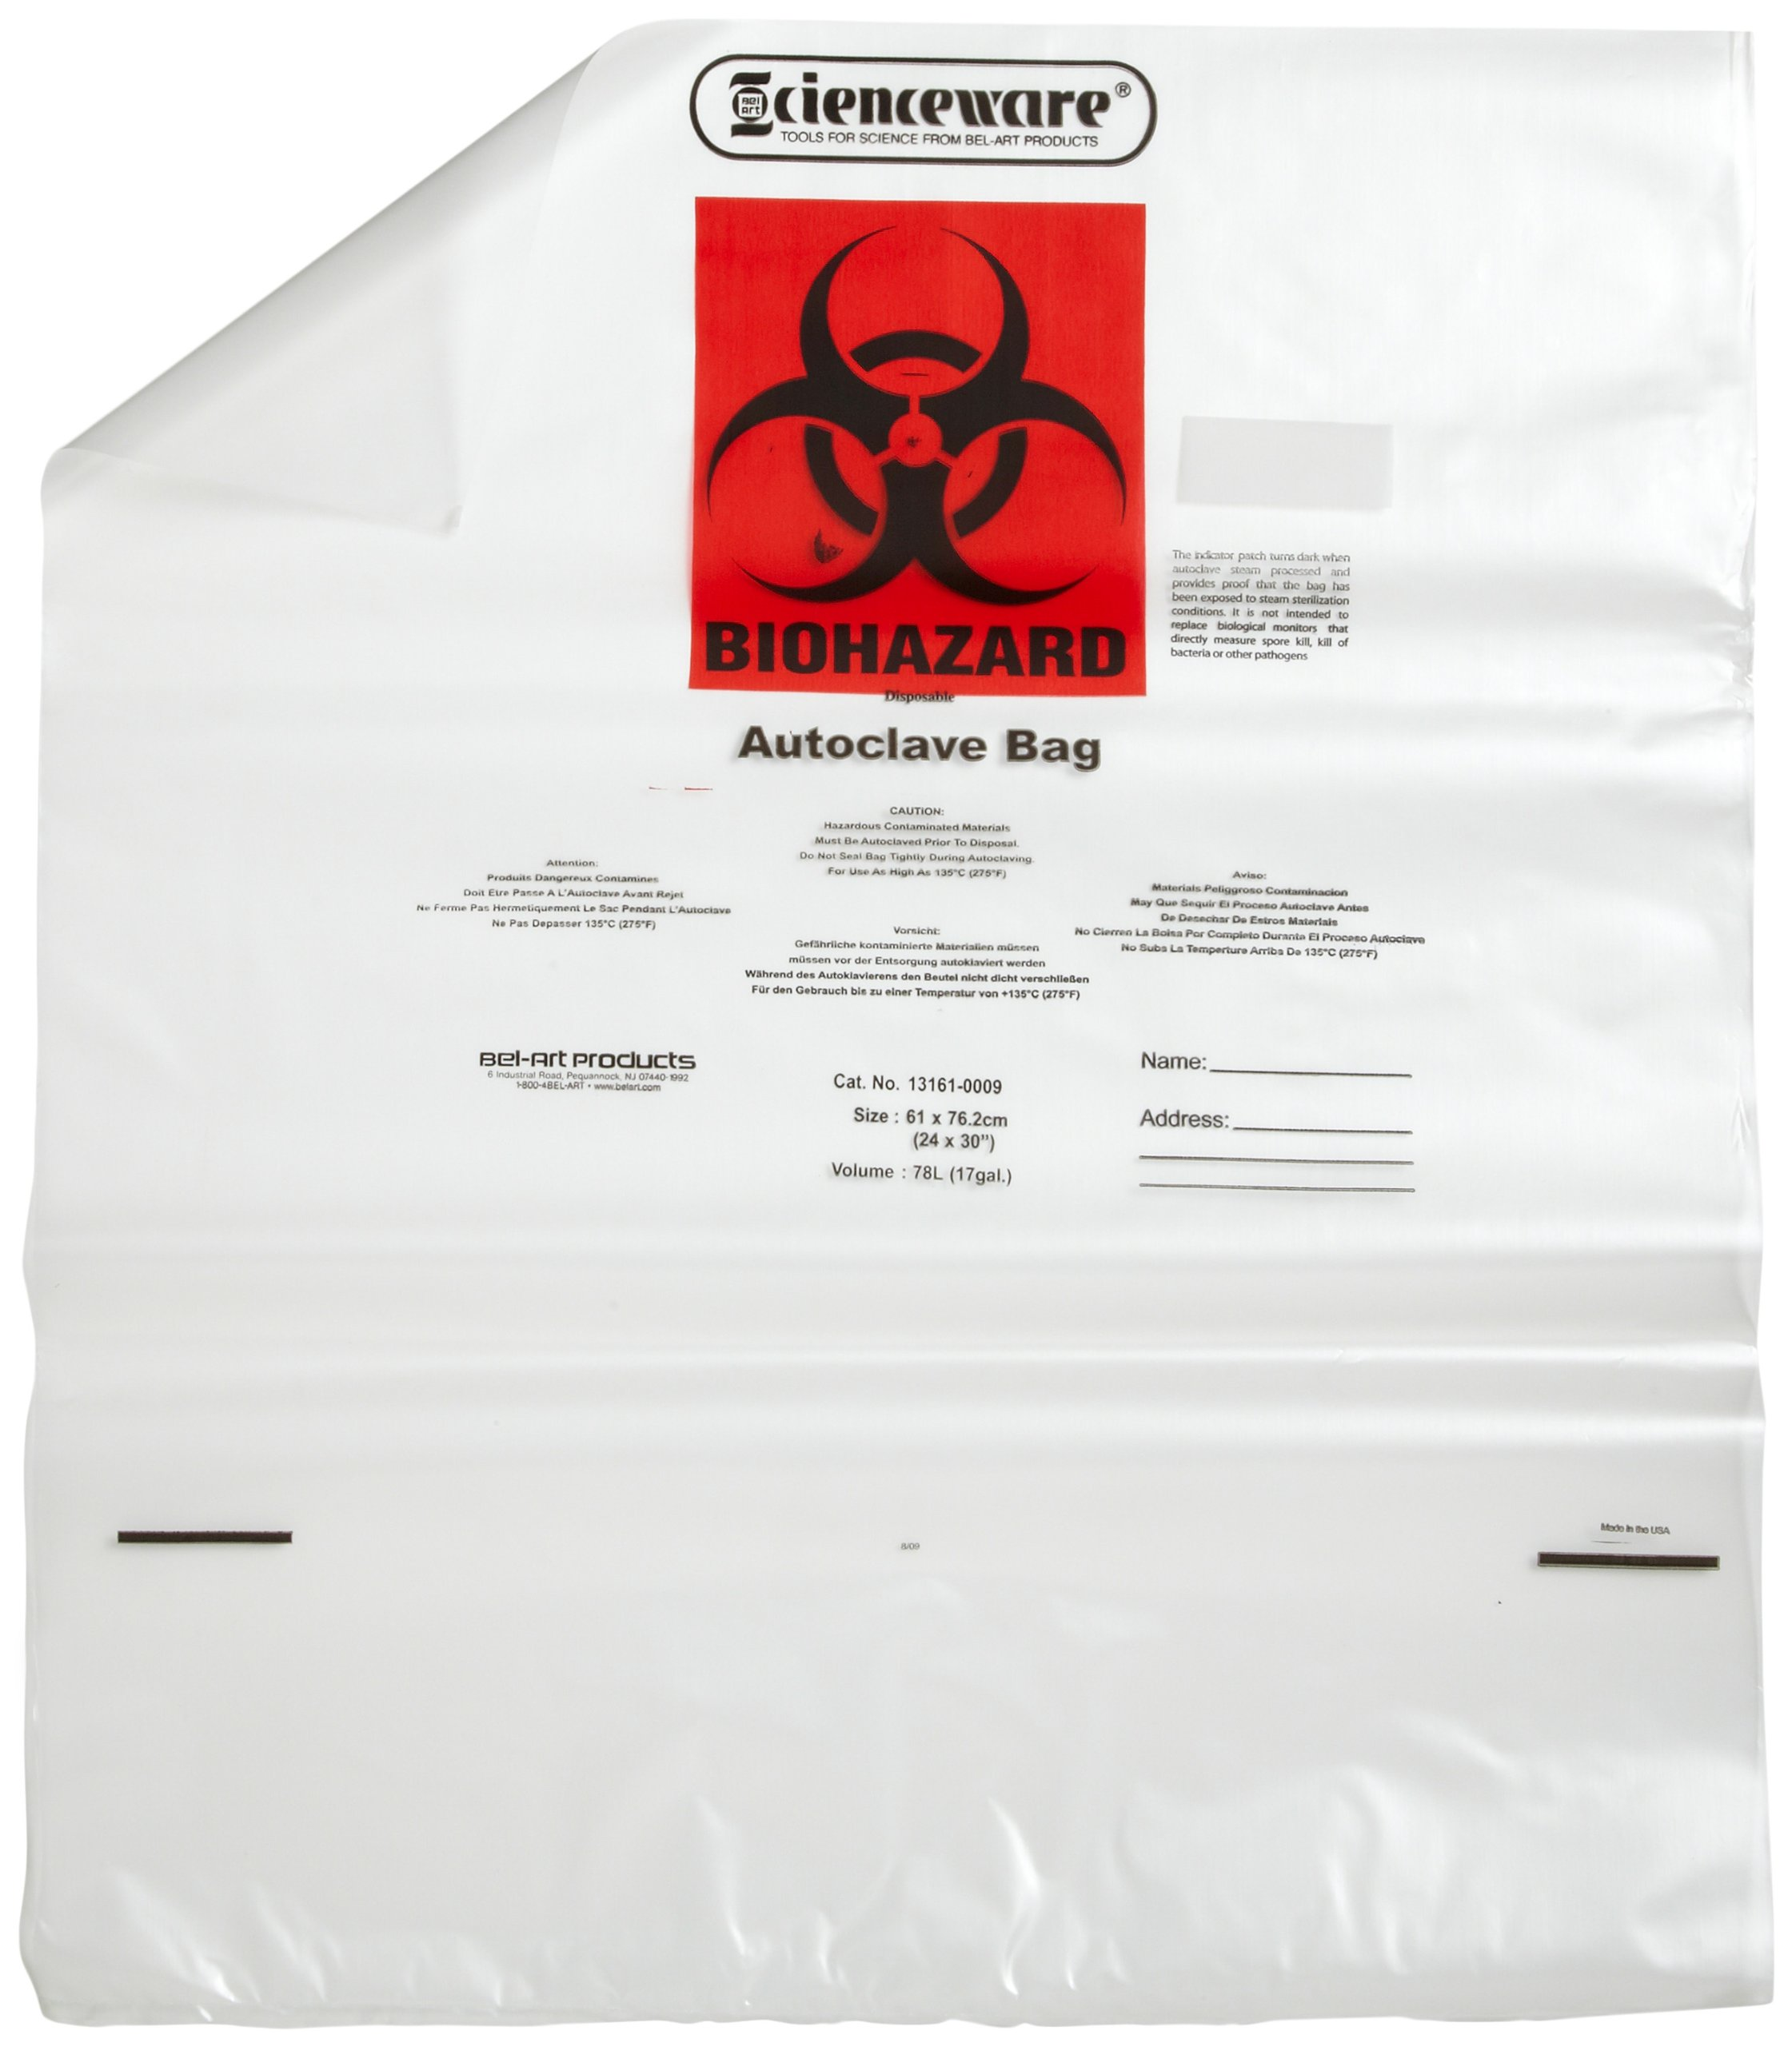 Bel-Art F13161-0009 Polypropylene 10-12 Gallon Clear Biohazard Disposal Bags with Warning Label/Sterilization Indicator, 24W x 30 in. H, 1.5mil Thick (Pack of 100)